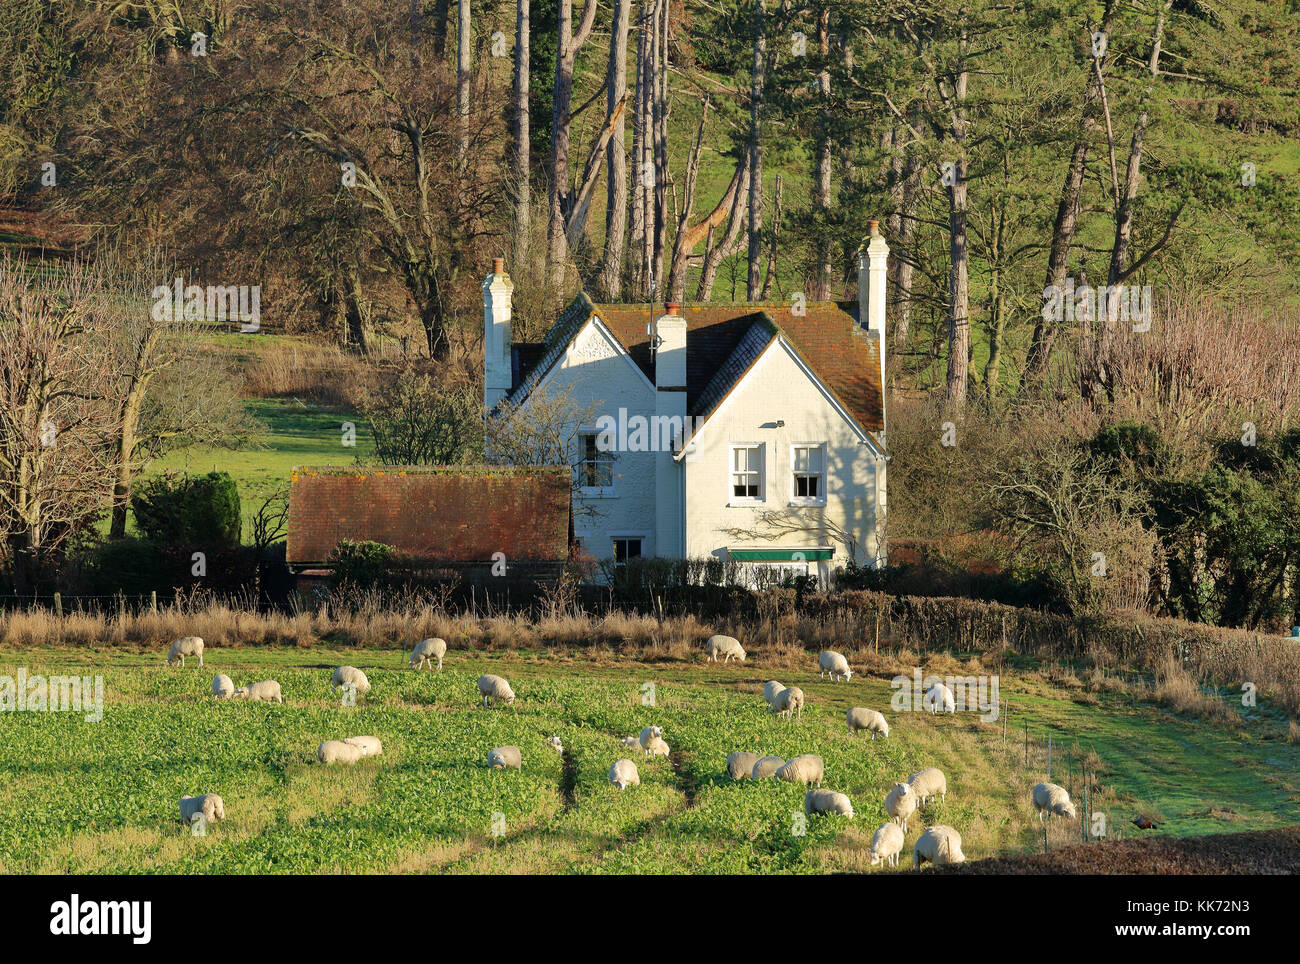 An English Rural Winter Landscape in the Chiltern Hills with grazing Sheep and white house - Stock Image